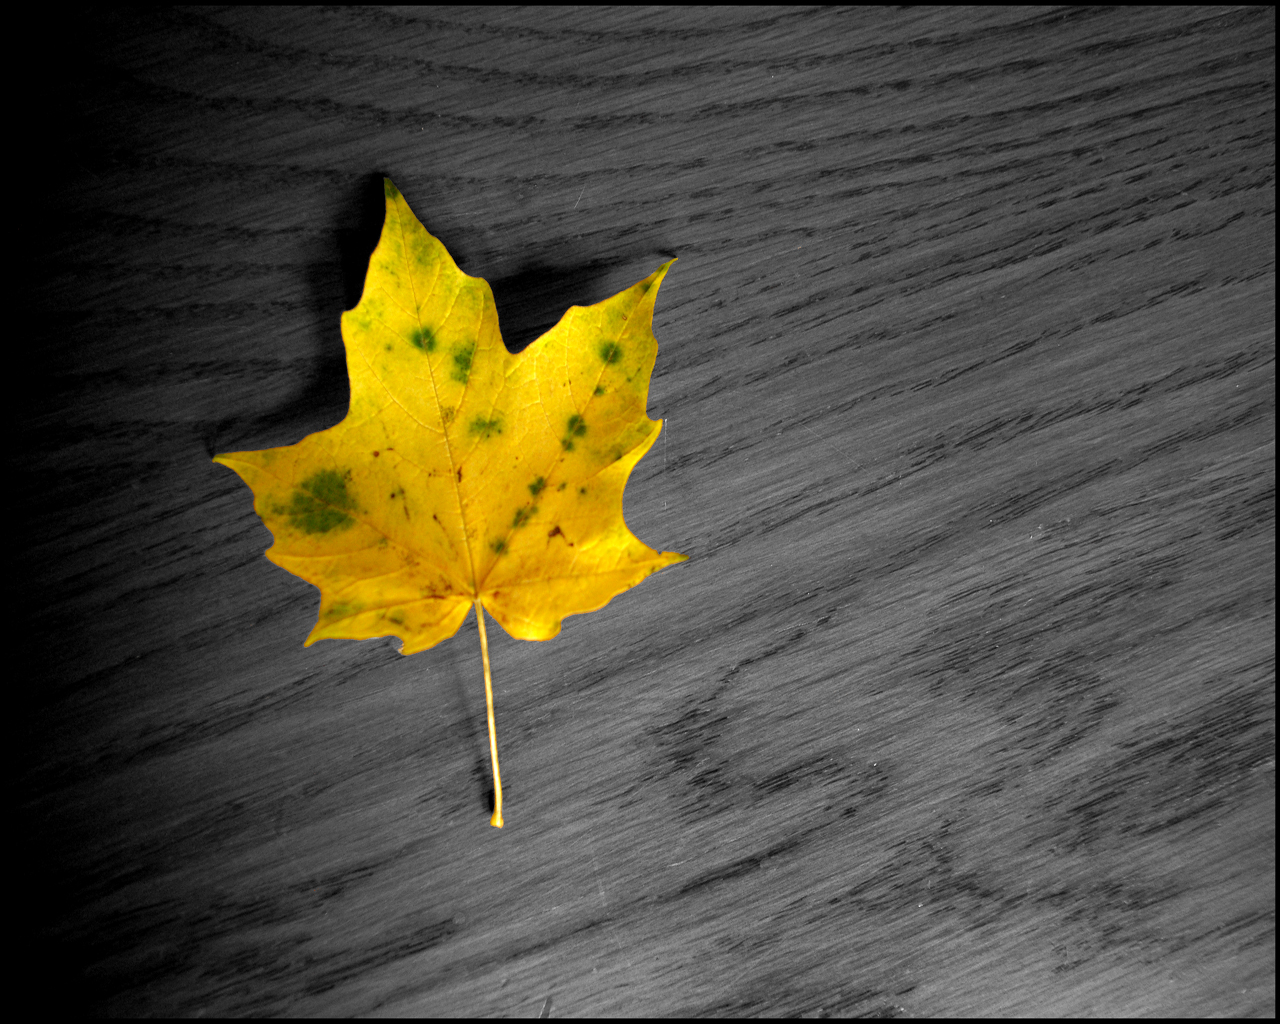 Free screensavers and wallpapers kscreensavers autumn leaves autumn wallpaper voltagebd Image collections